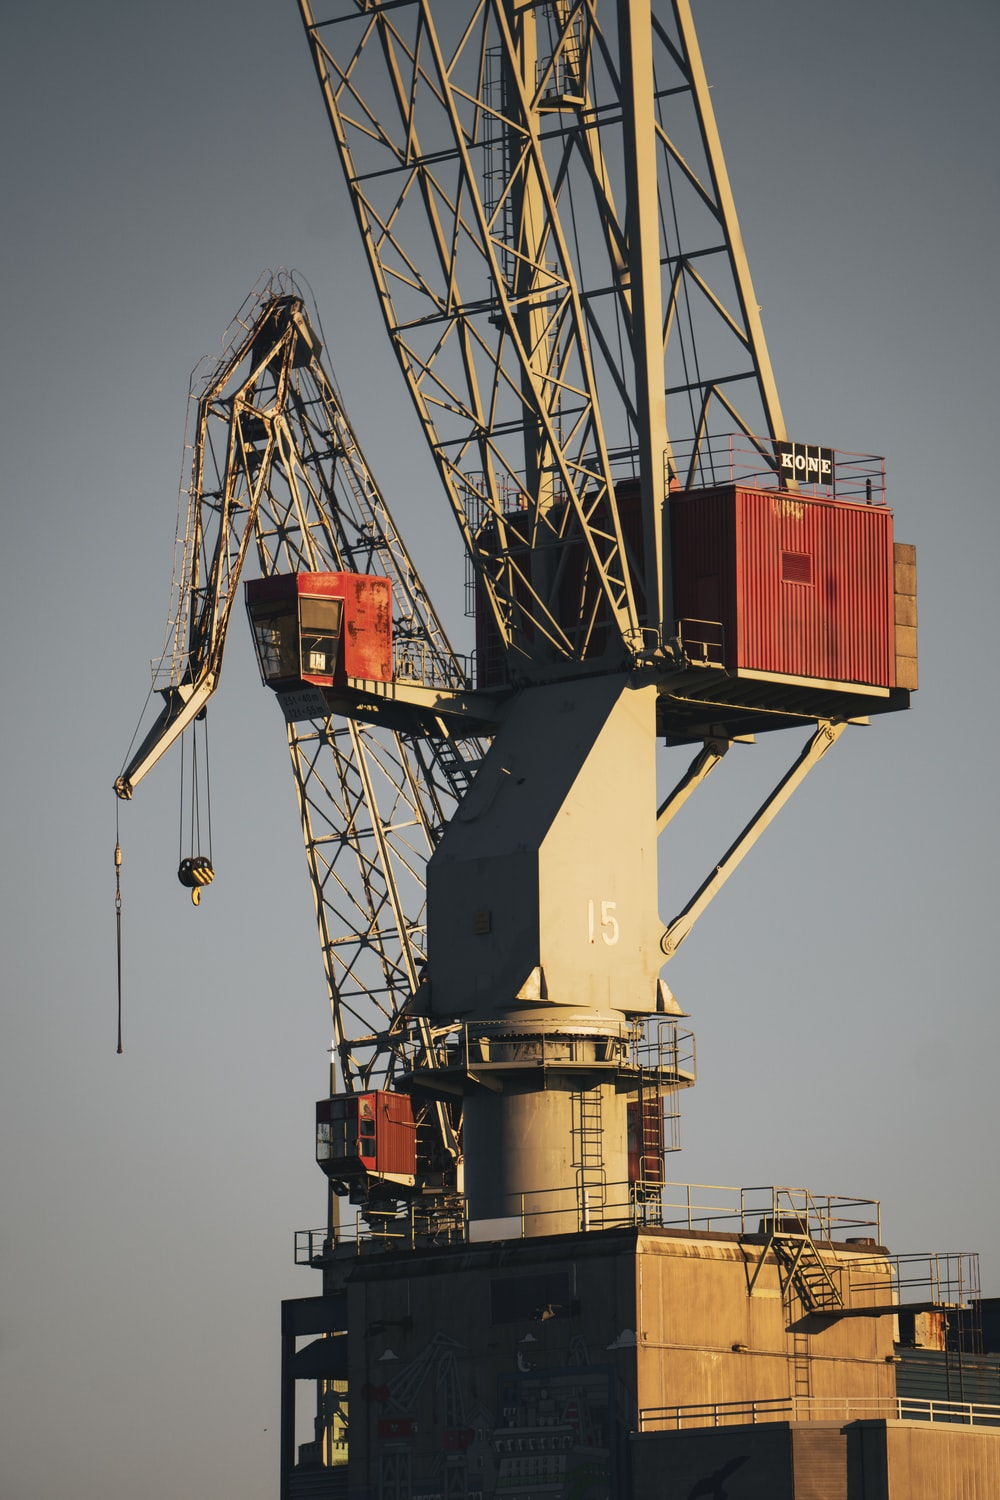 white and red crane under blue sky during daytime